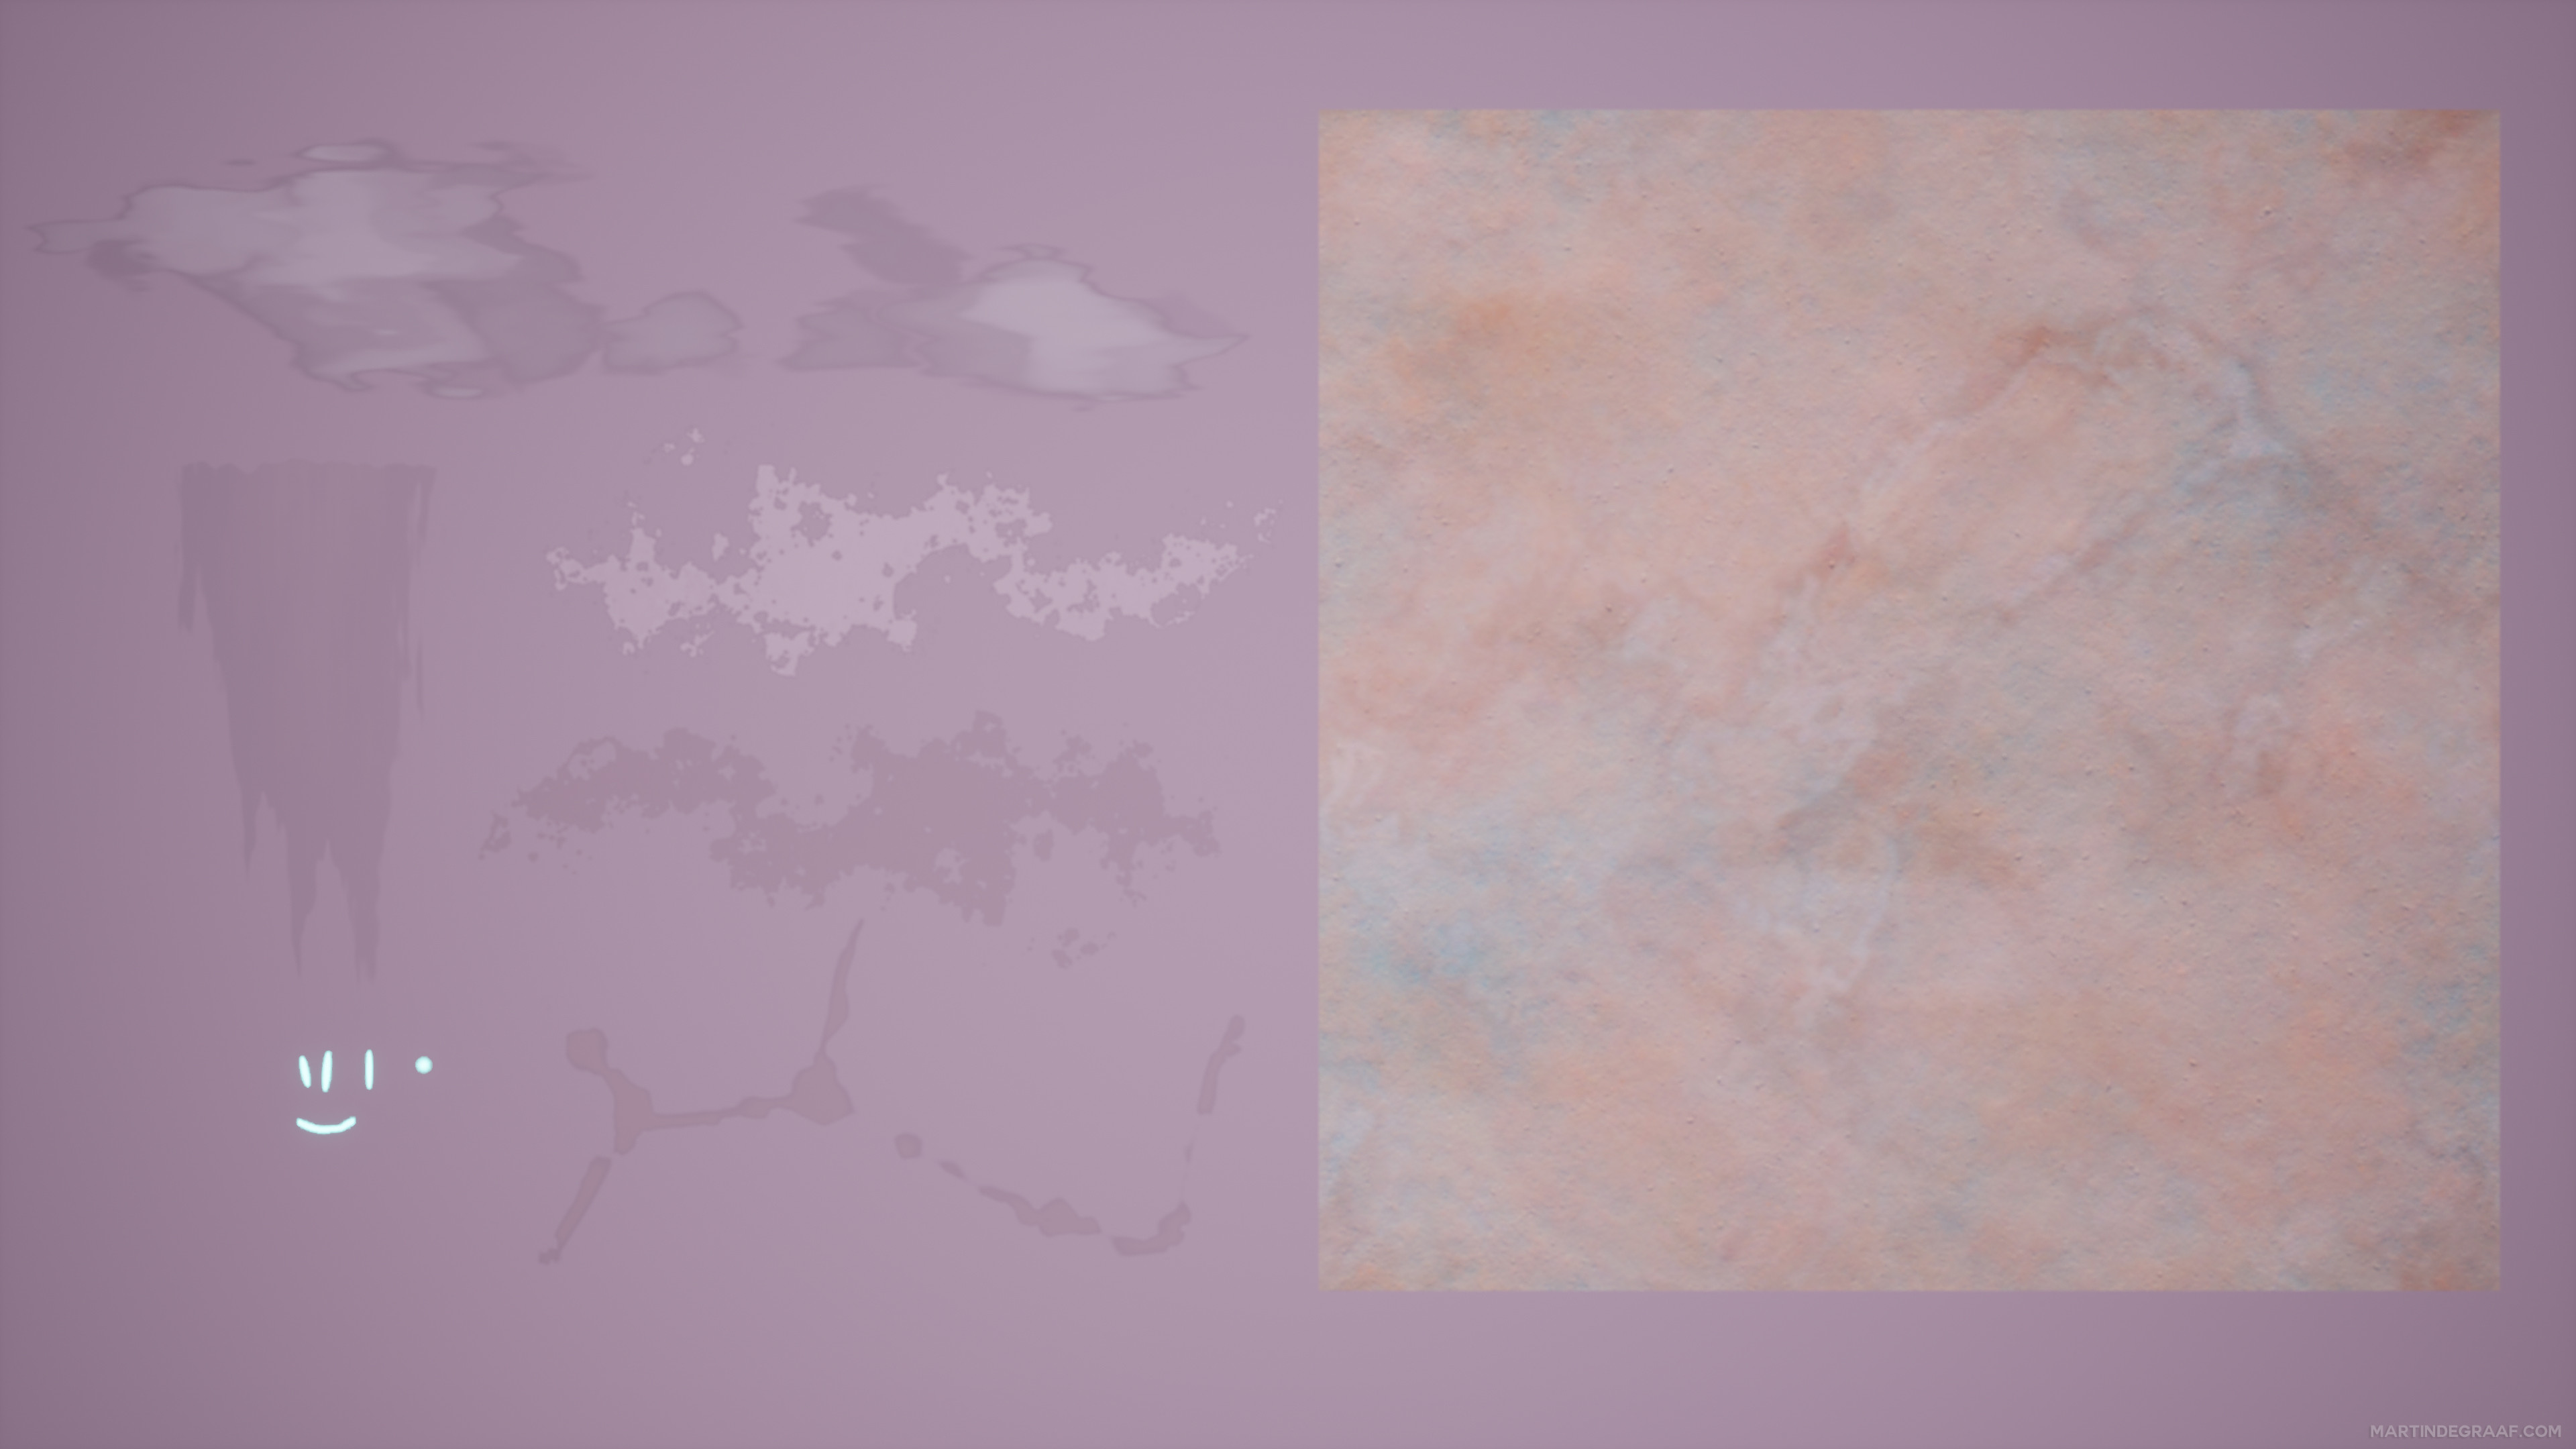 Decals / Tileable Material used for the Assets